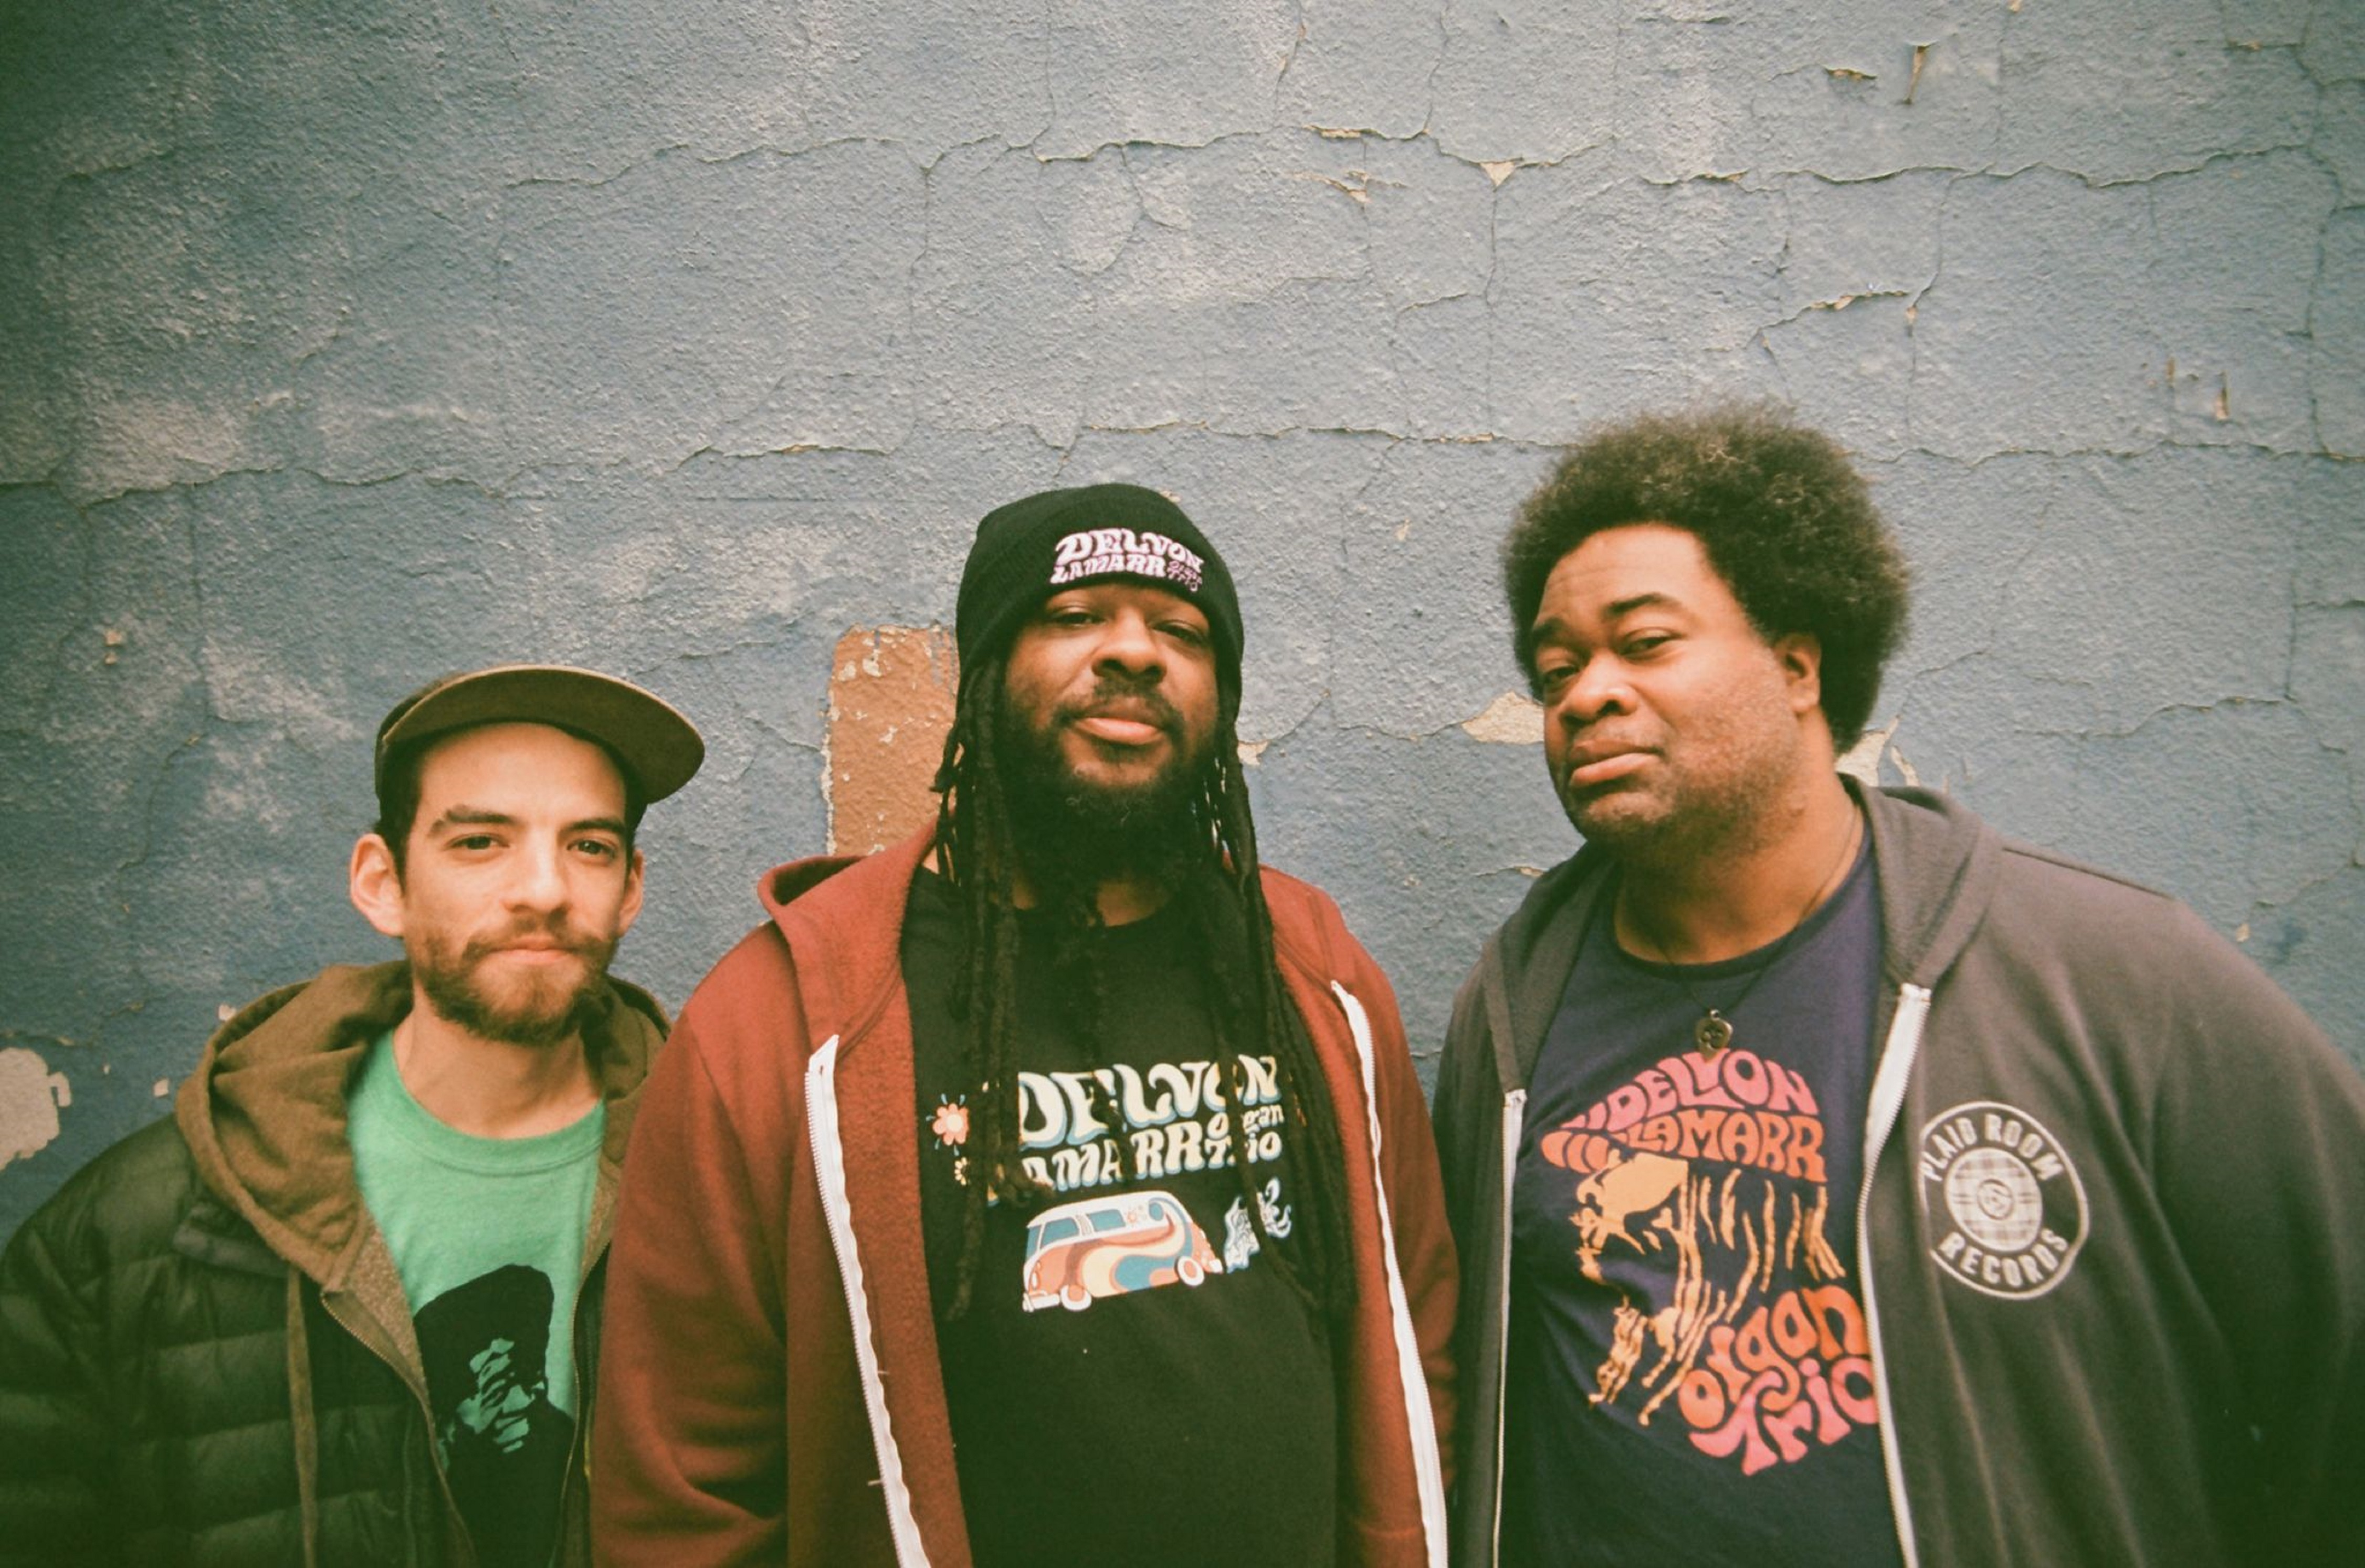 Delvon Lamarr Organ Trio Announces New Album I Told You So Out January 29th